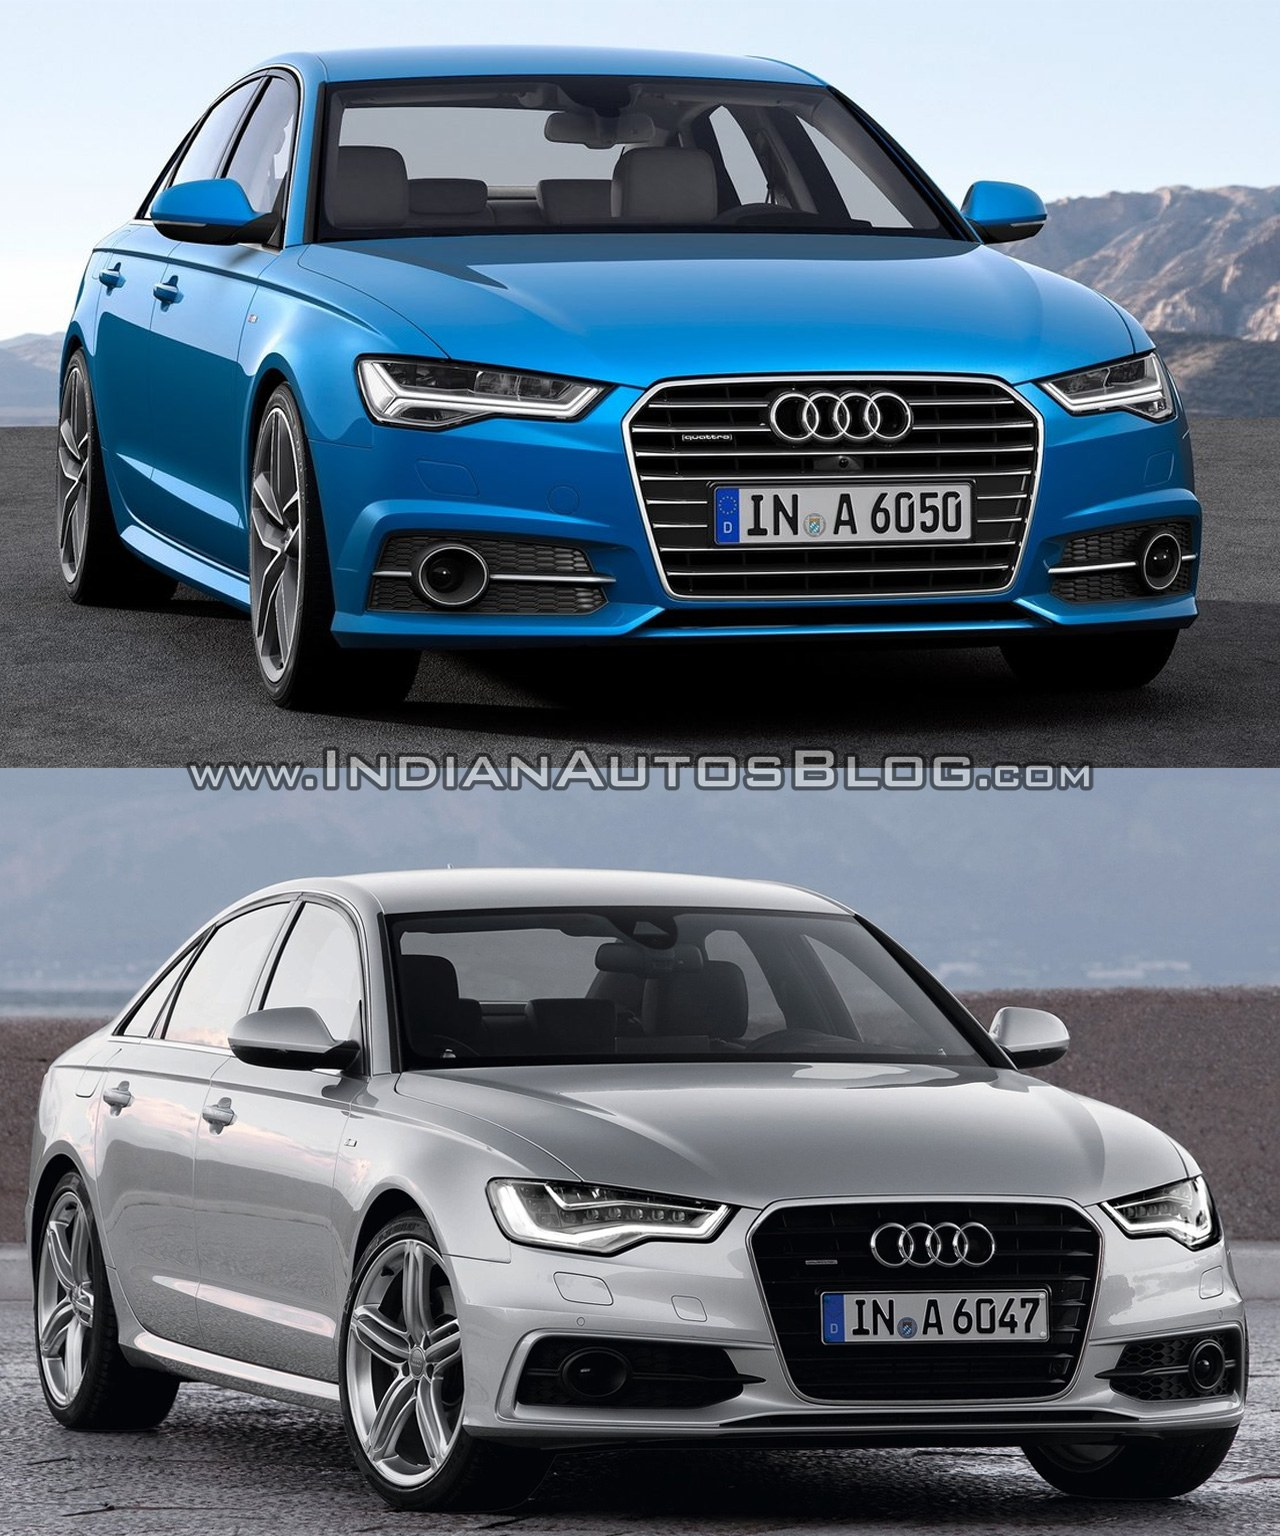 Old vs New - 2015 Audi A6 (facelift) vs pre-facelift model